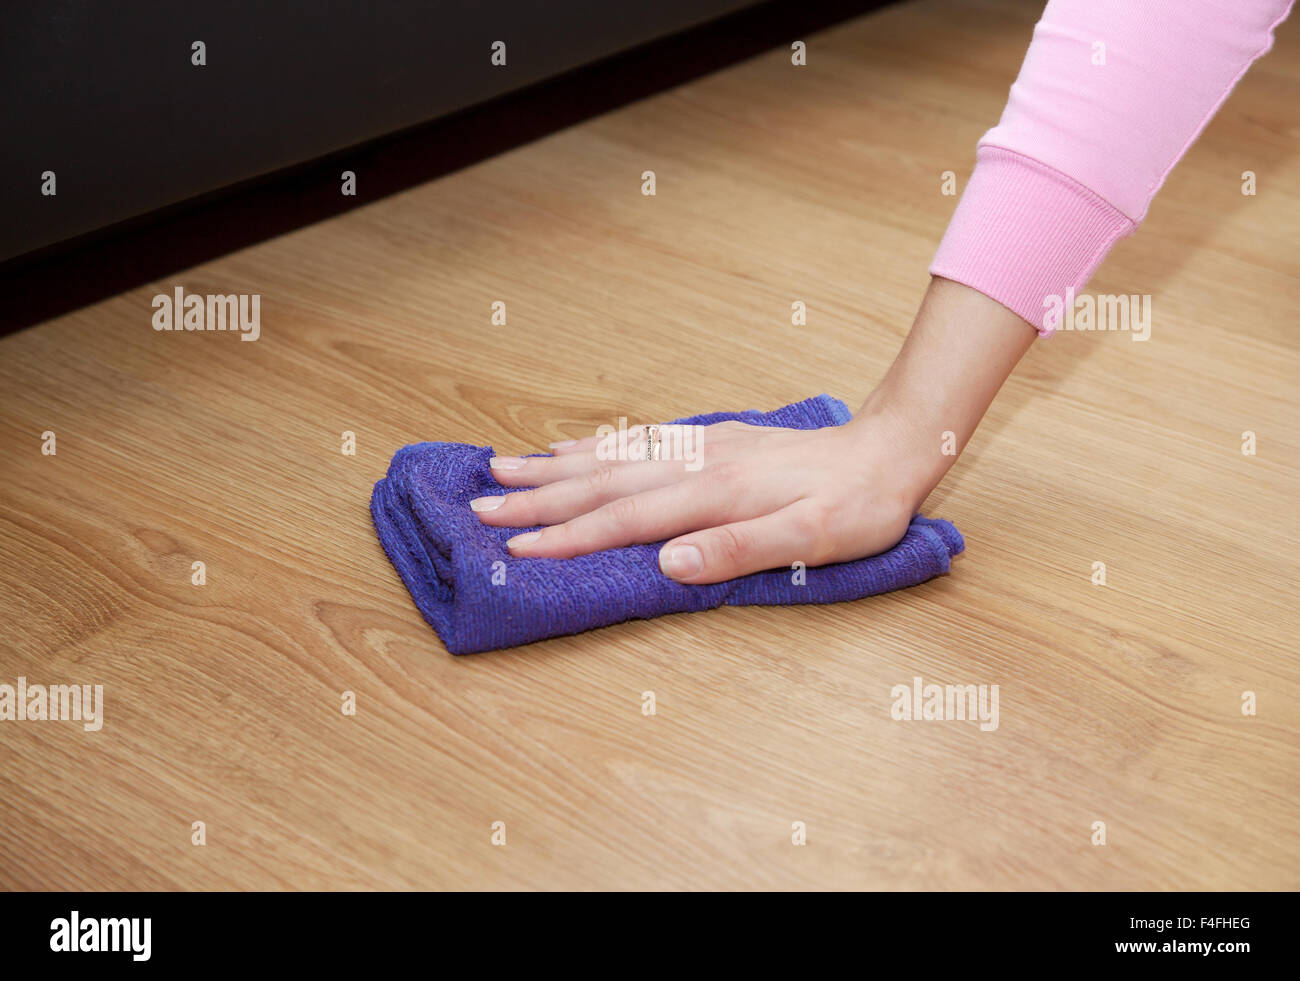 woman's hand cleaning the wooden floor with a blue floorcloth closeup - Stock Image